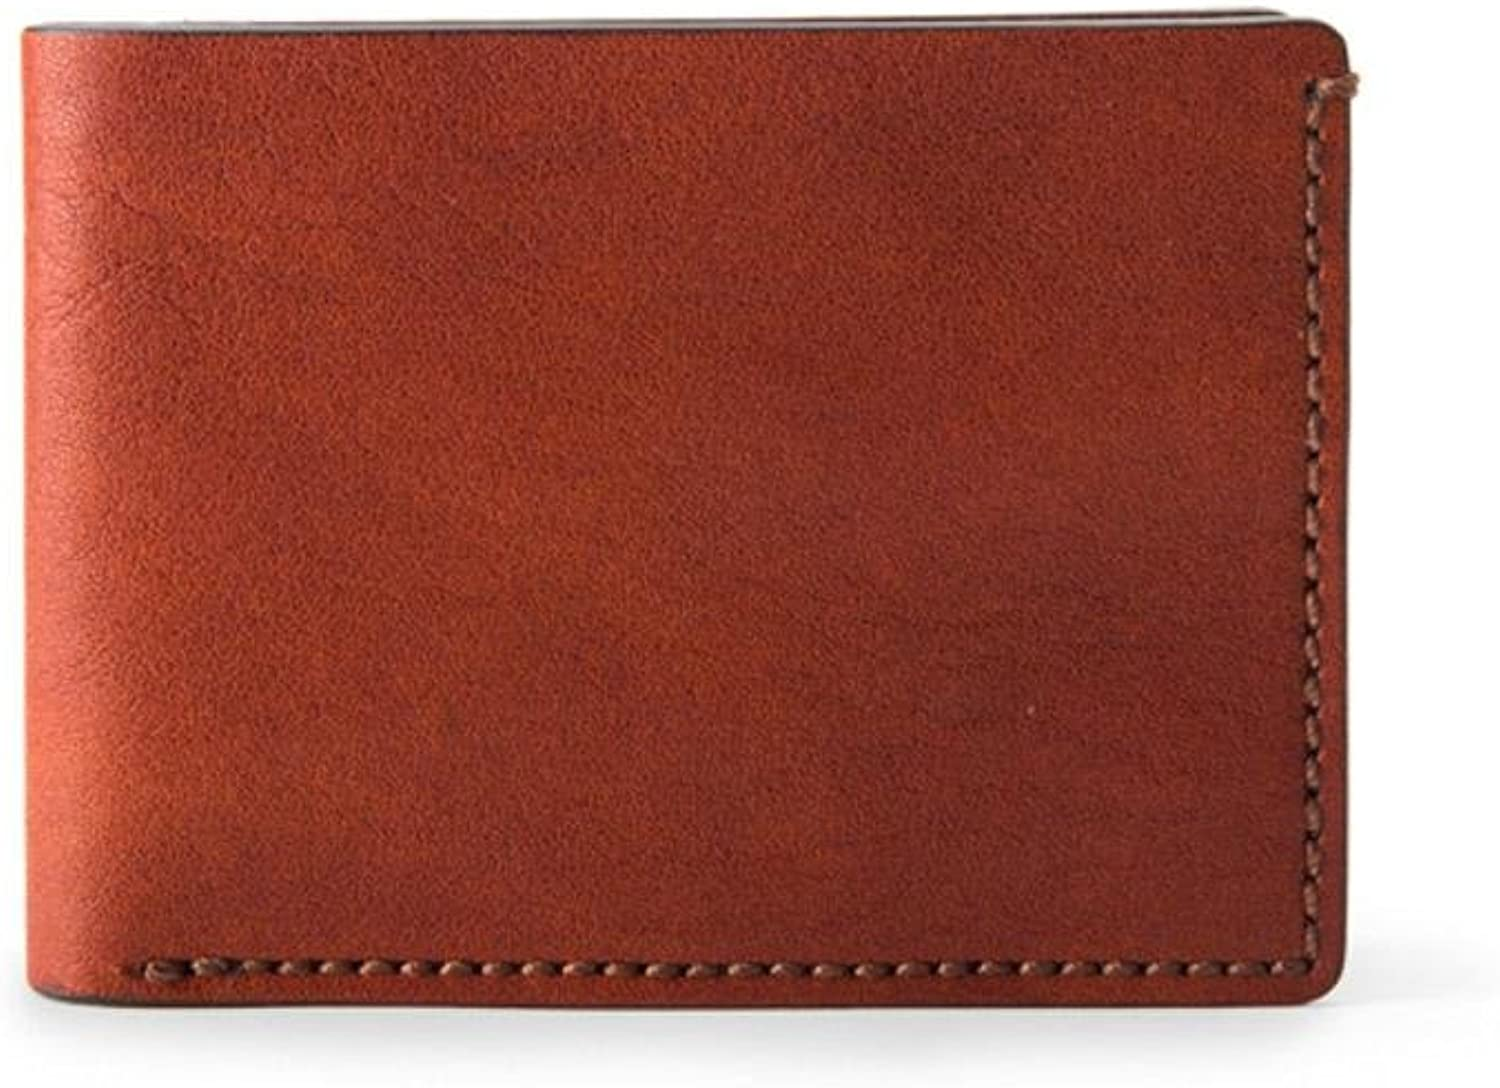 Bosca Men's Washed Collection  Small Billfold